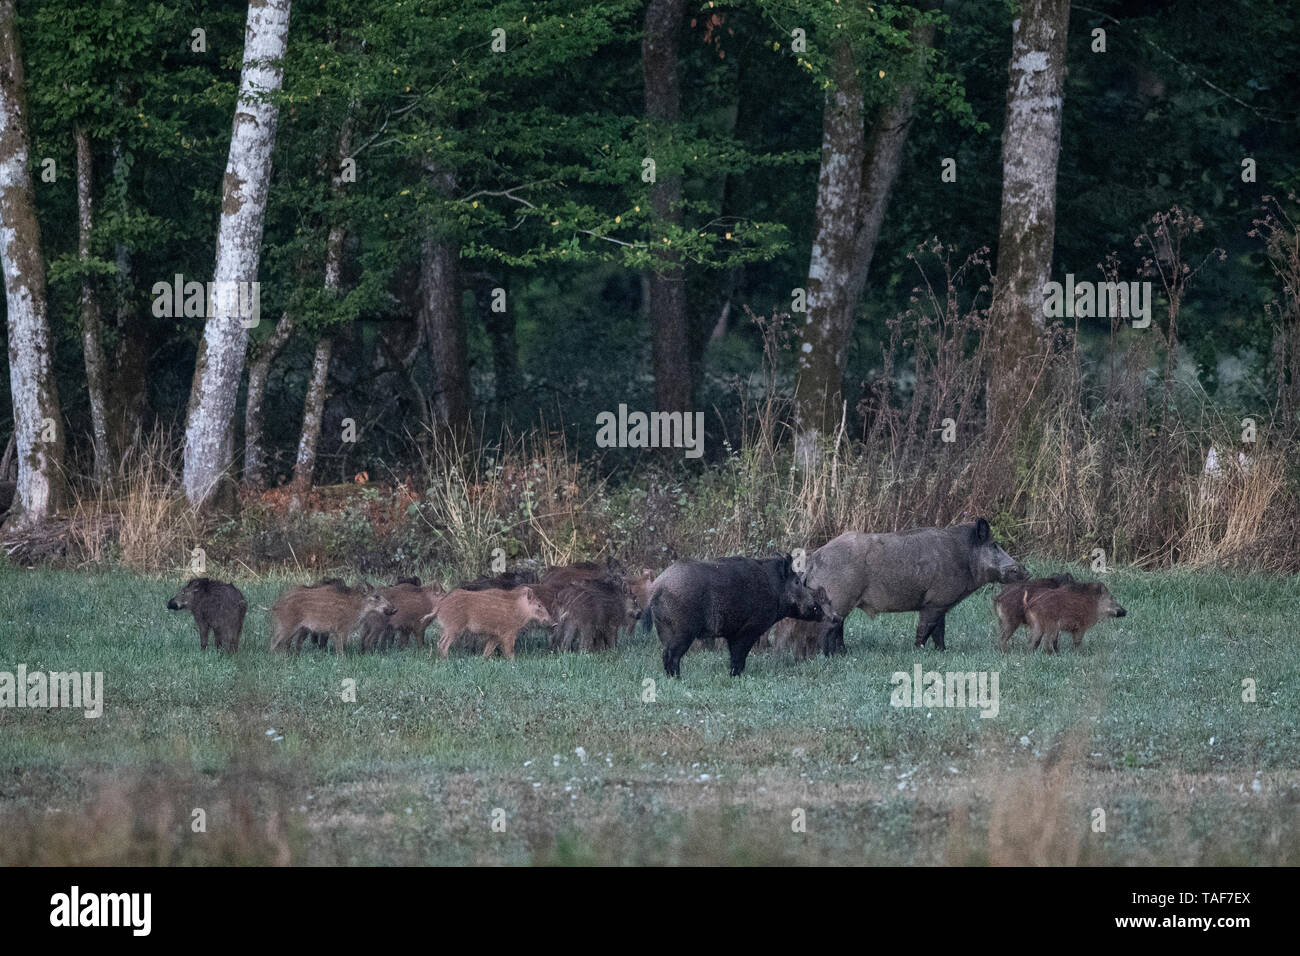 Wild boar (Sus scrofa) and youngs in clearing, Vosges, France - Stock Image